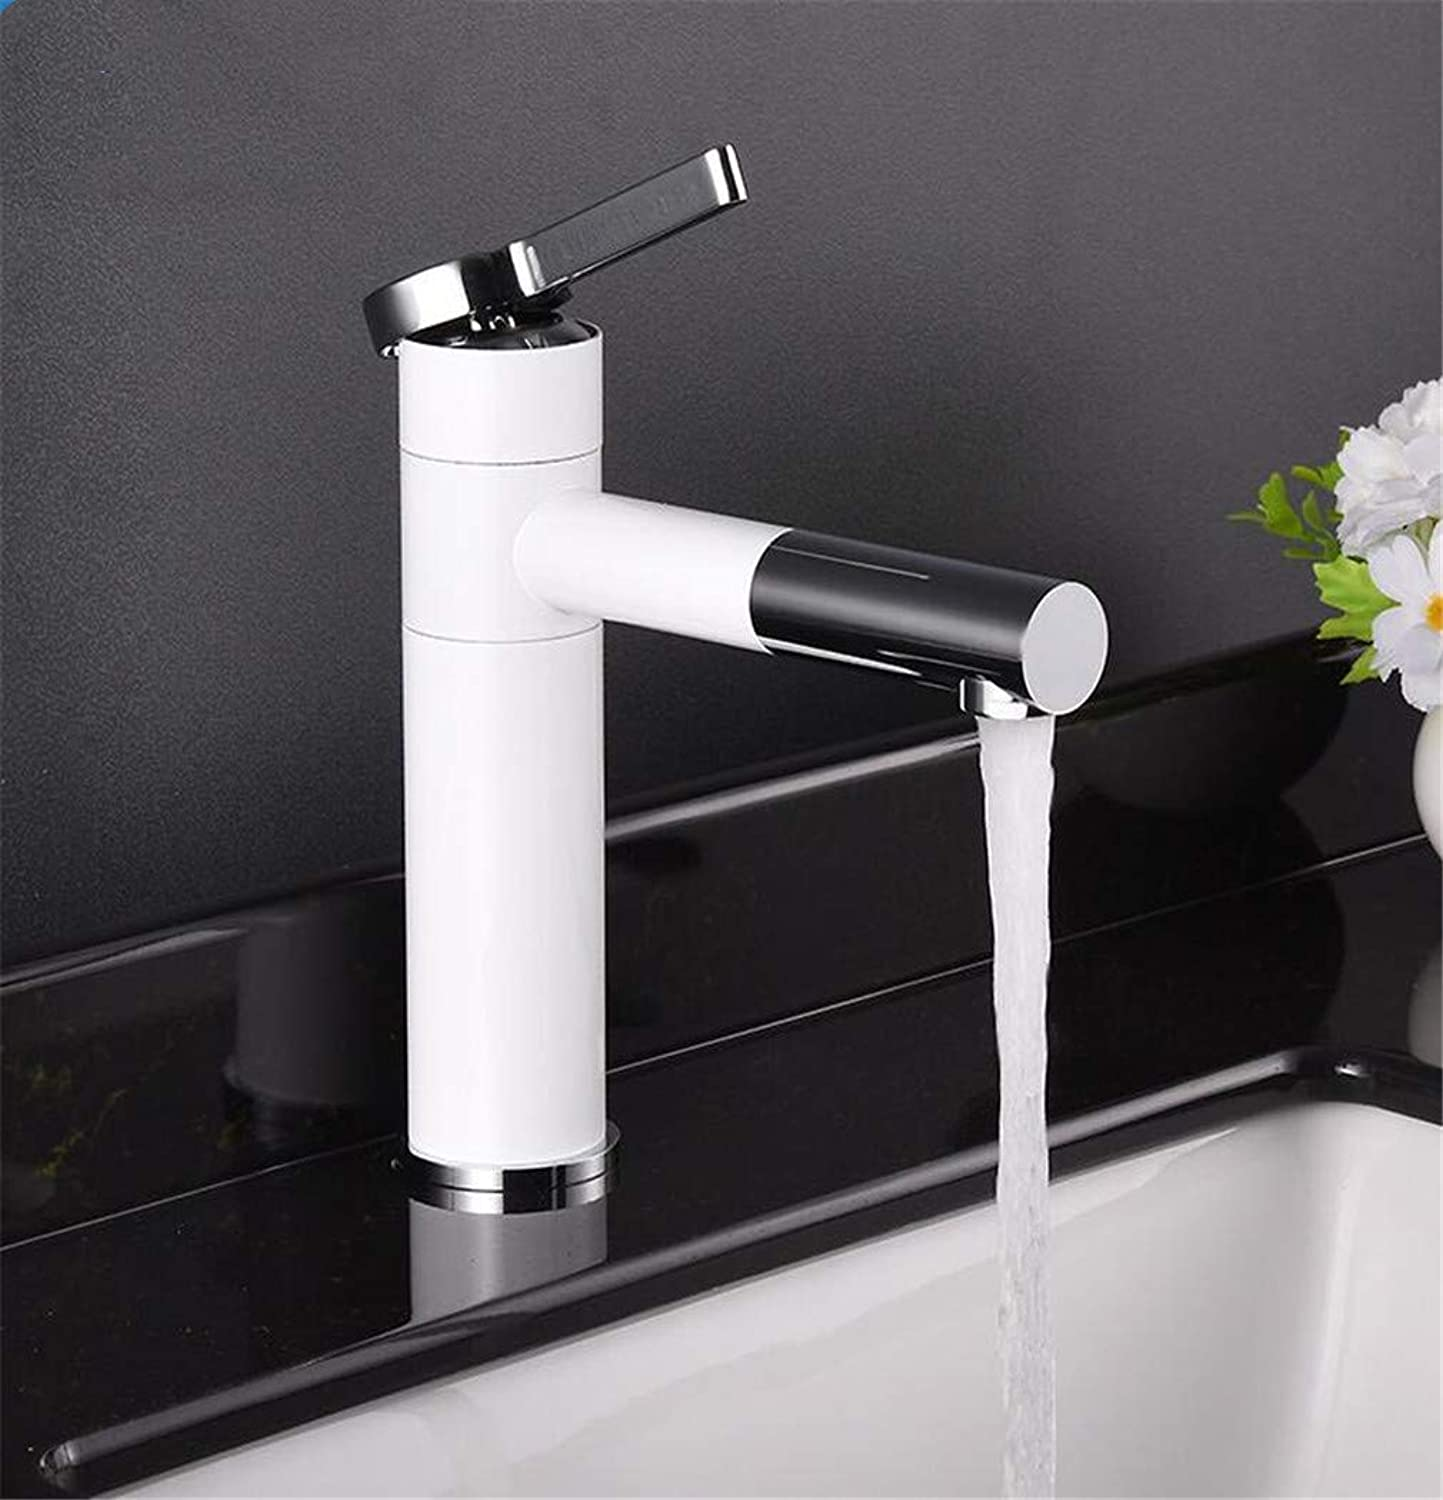 Newater White Bathroom Brass Tap Mixer Chrome Faucet Single Hole Hot Cold Faucet Water Basin Sink Elegant Basin Faucet